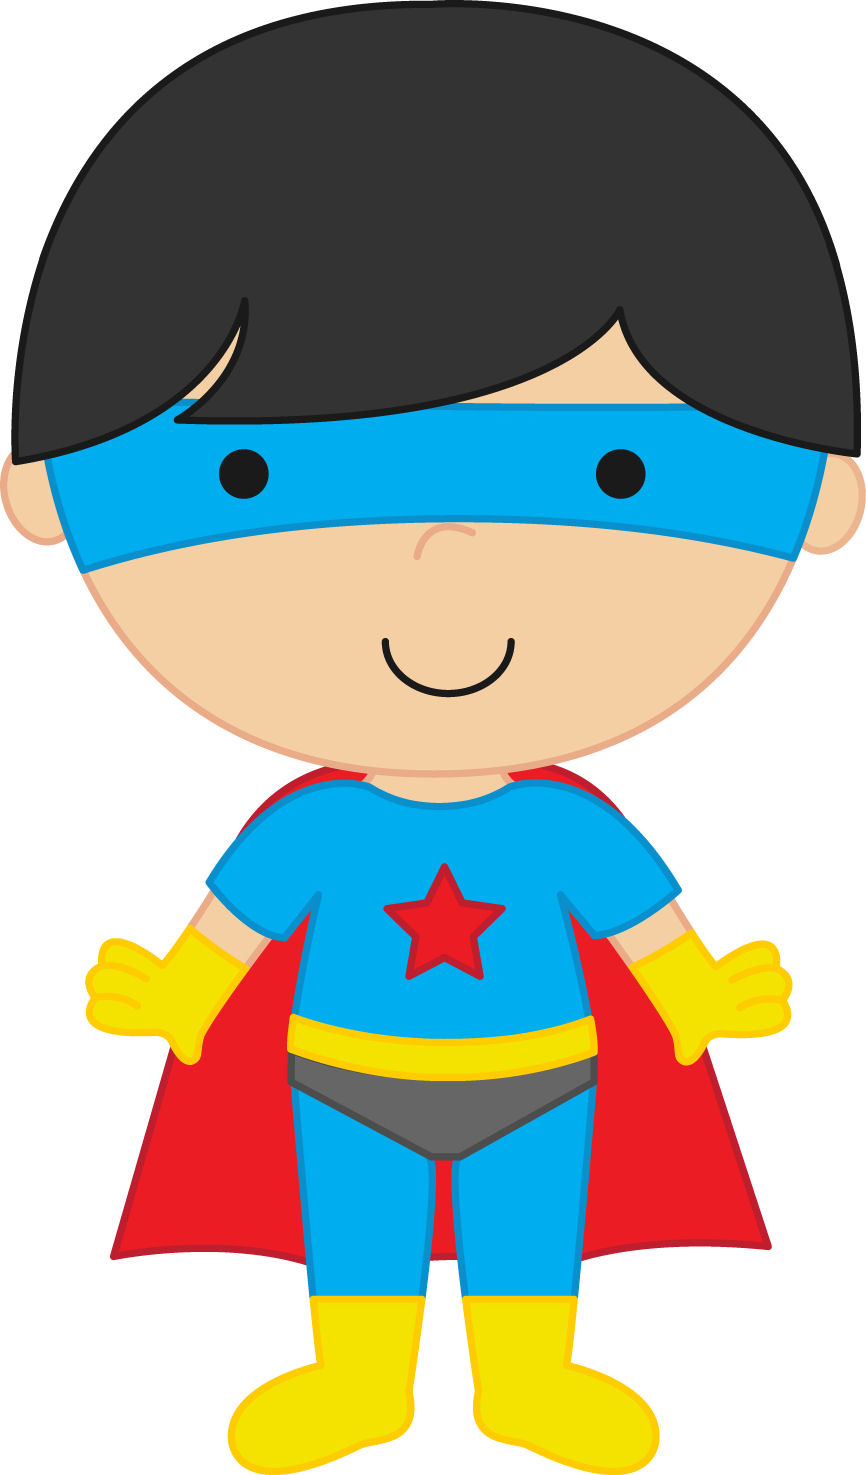 Superhero kid clipart clip art royalty free stock Being Brave Clipart Super hero | Clipart Panda - Free Clipart Images clip art royalty free stock